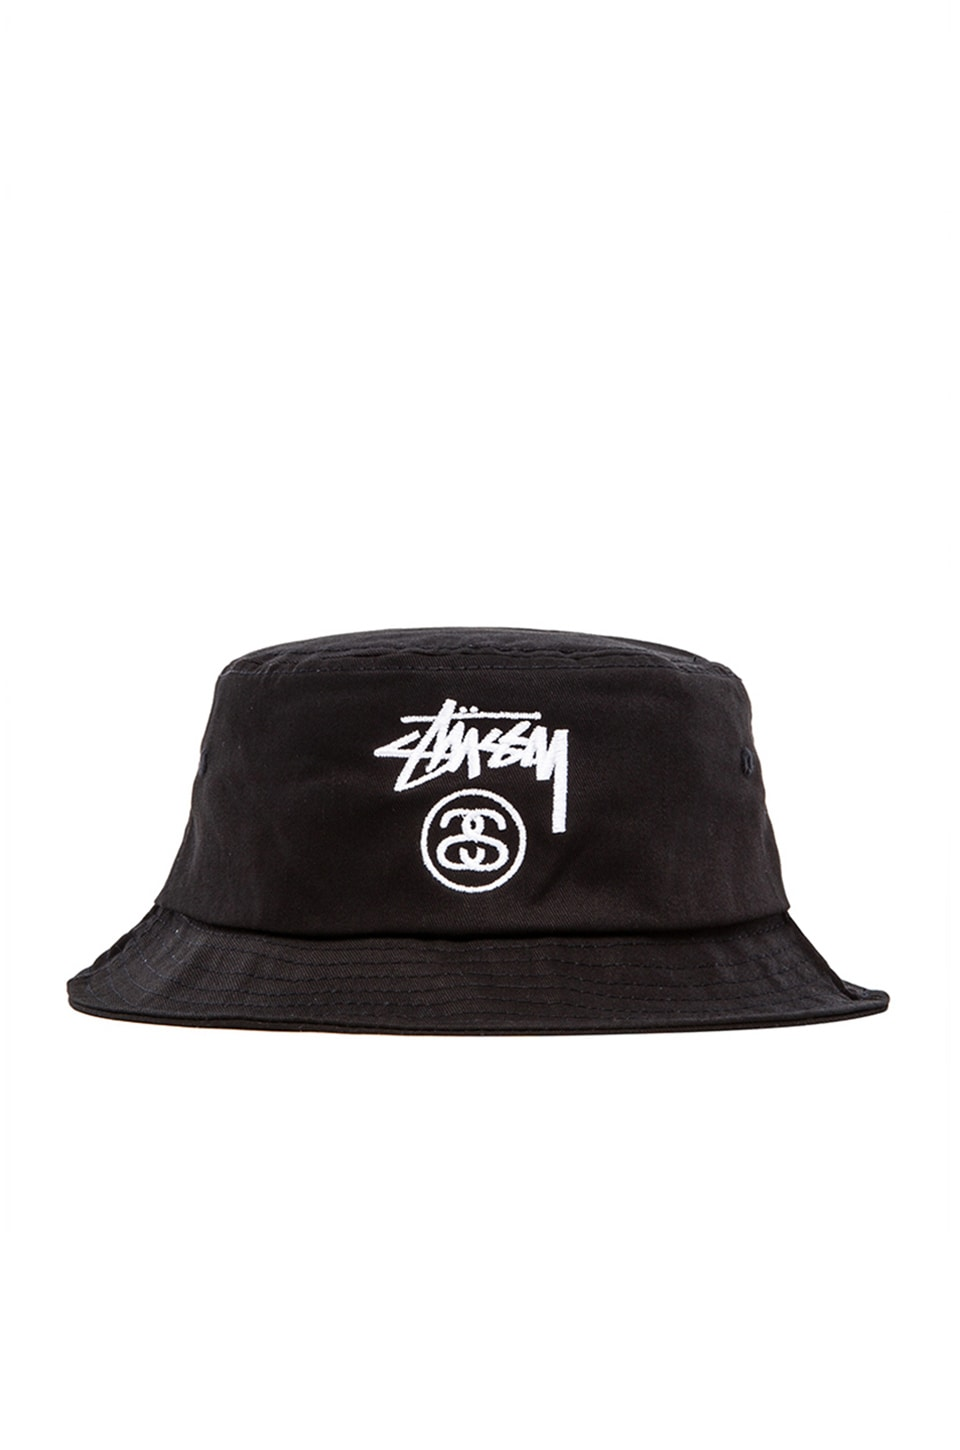 Stussy Stock Lock Bucket Hat in Black  8c11bb4b8c